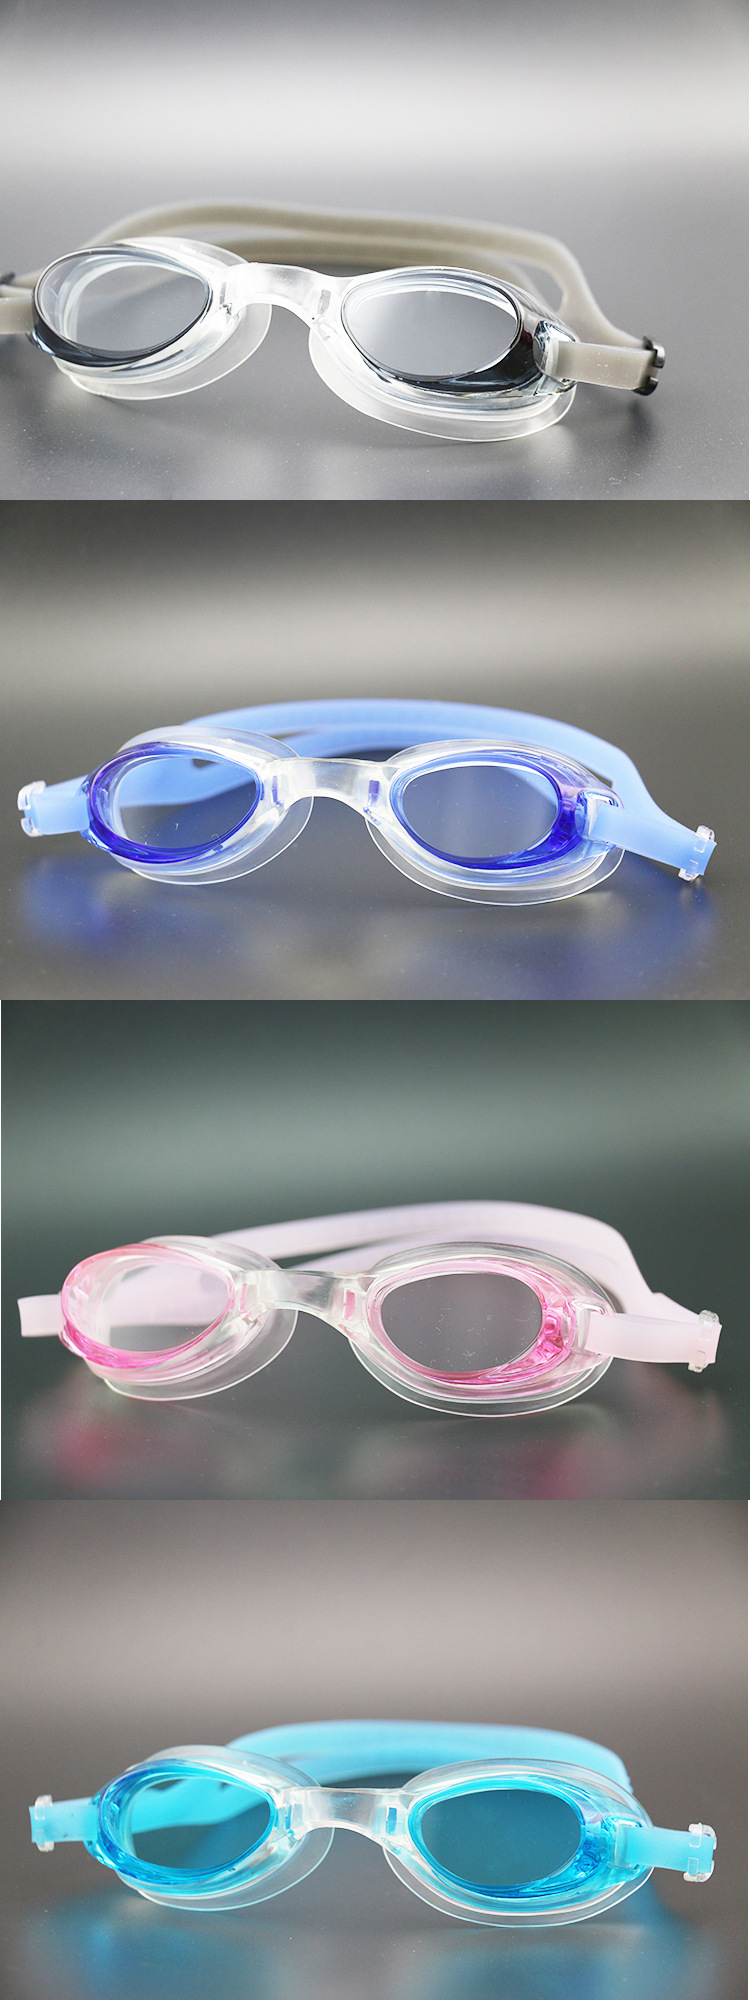 a6543fb2afb Package includes  1 pair   swimming glasses   lot. Please kindly note    Items will be repackaged to save your shipping charge   to be  environmentally ...